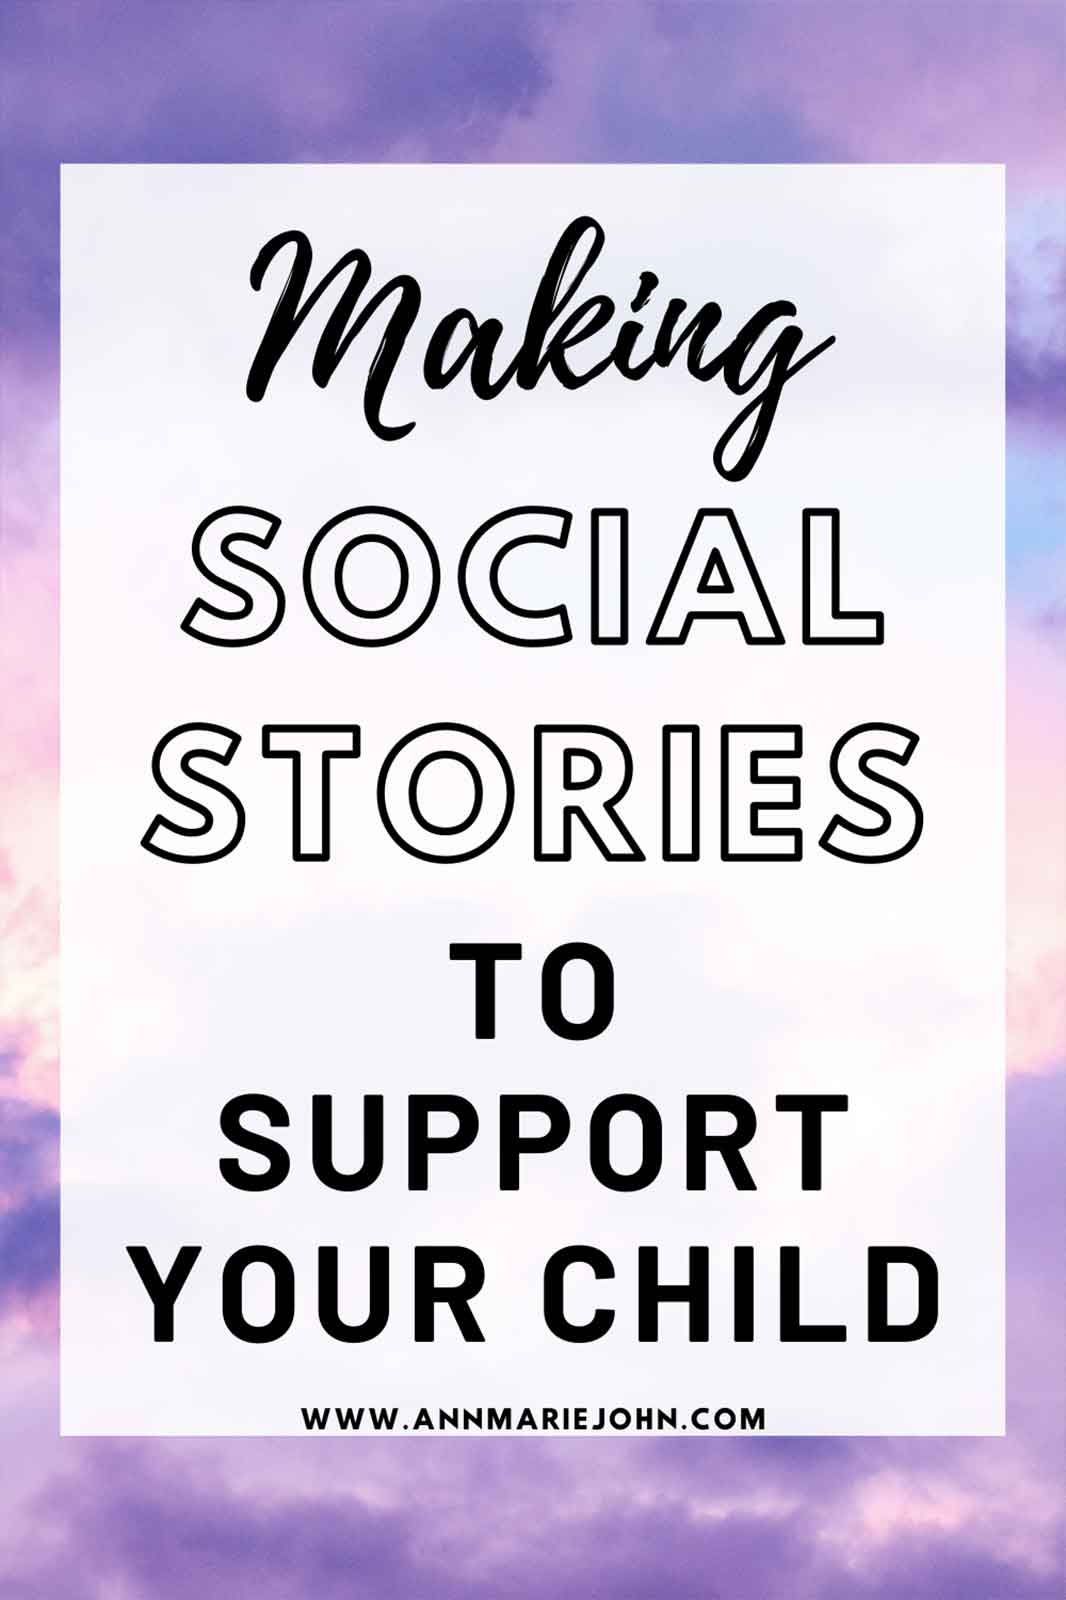 Making Social Stories To Support Your Child